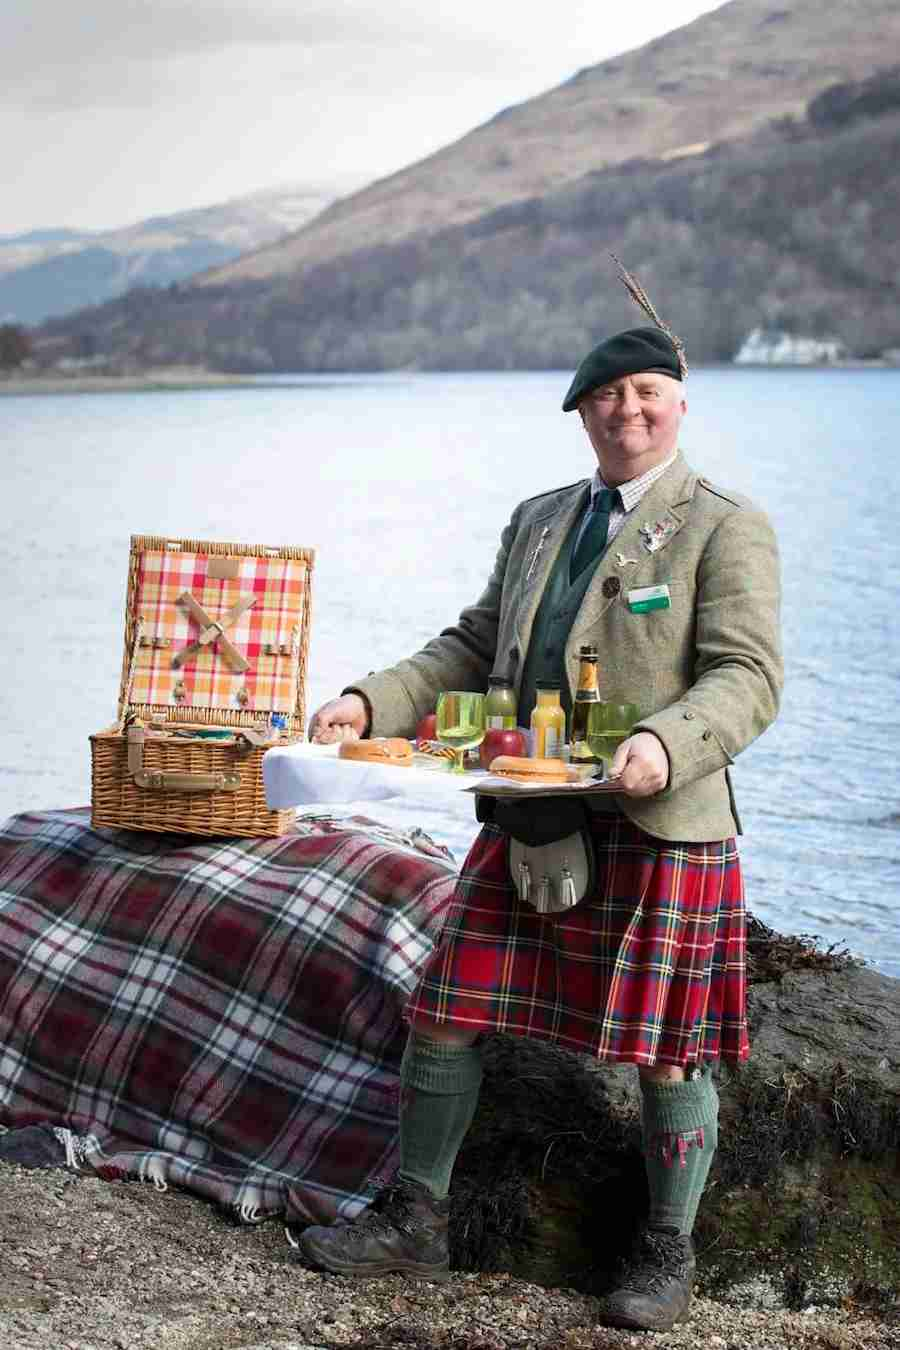 Picnic butler Jack Black is ready to give you a taste of Scotland. Photo courtesy of VisitScotland.